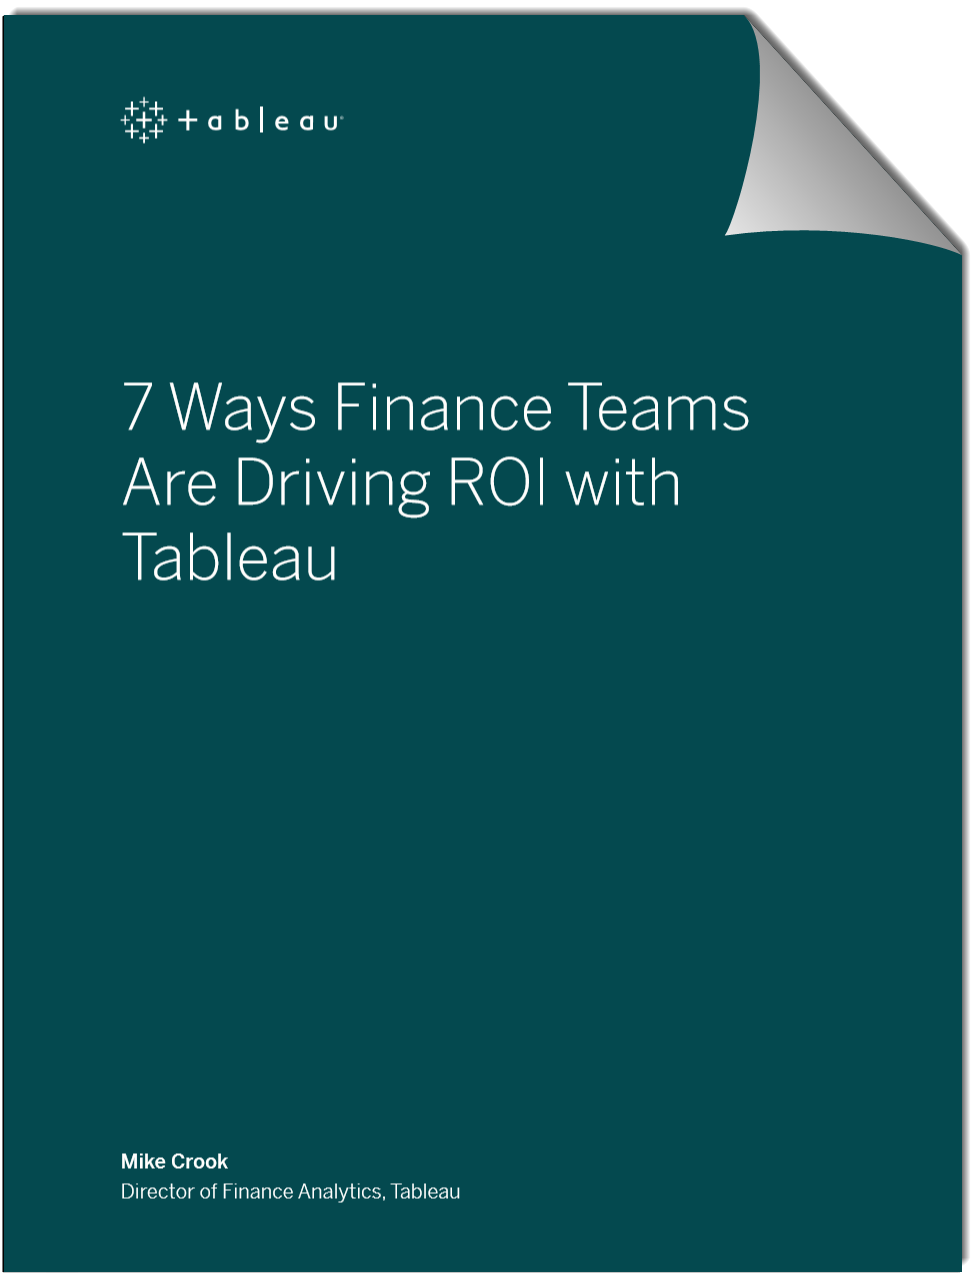 Tableau 7 ways finance teams are driving ROI with Tableau eBook cover